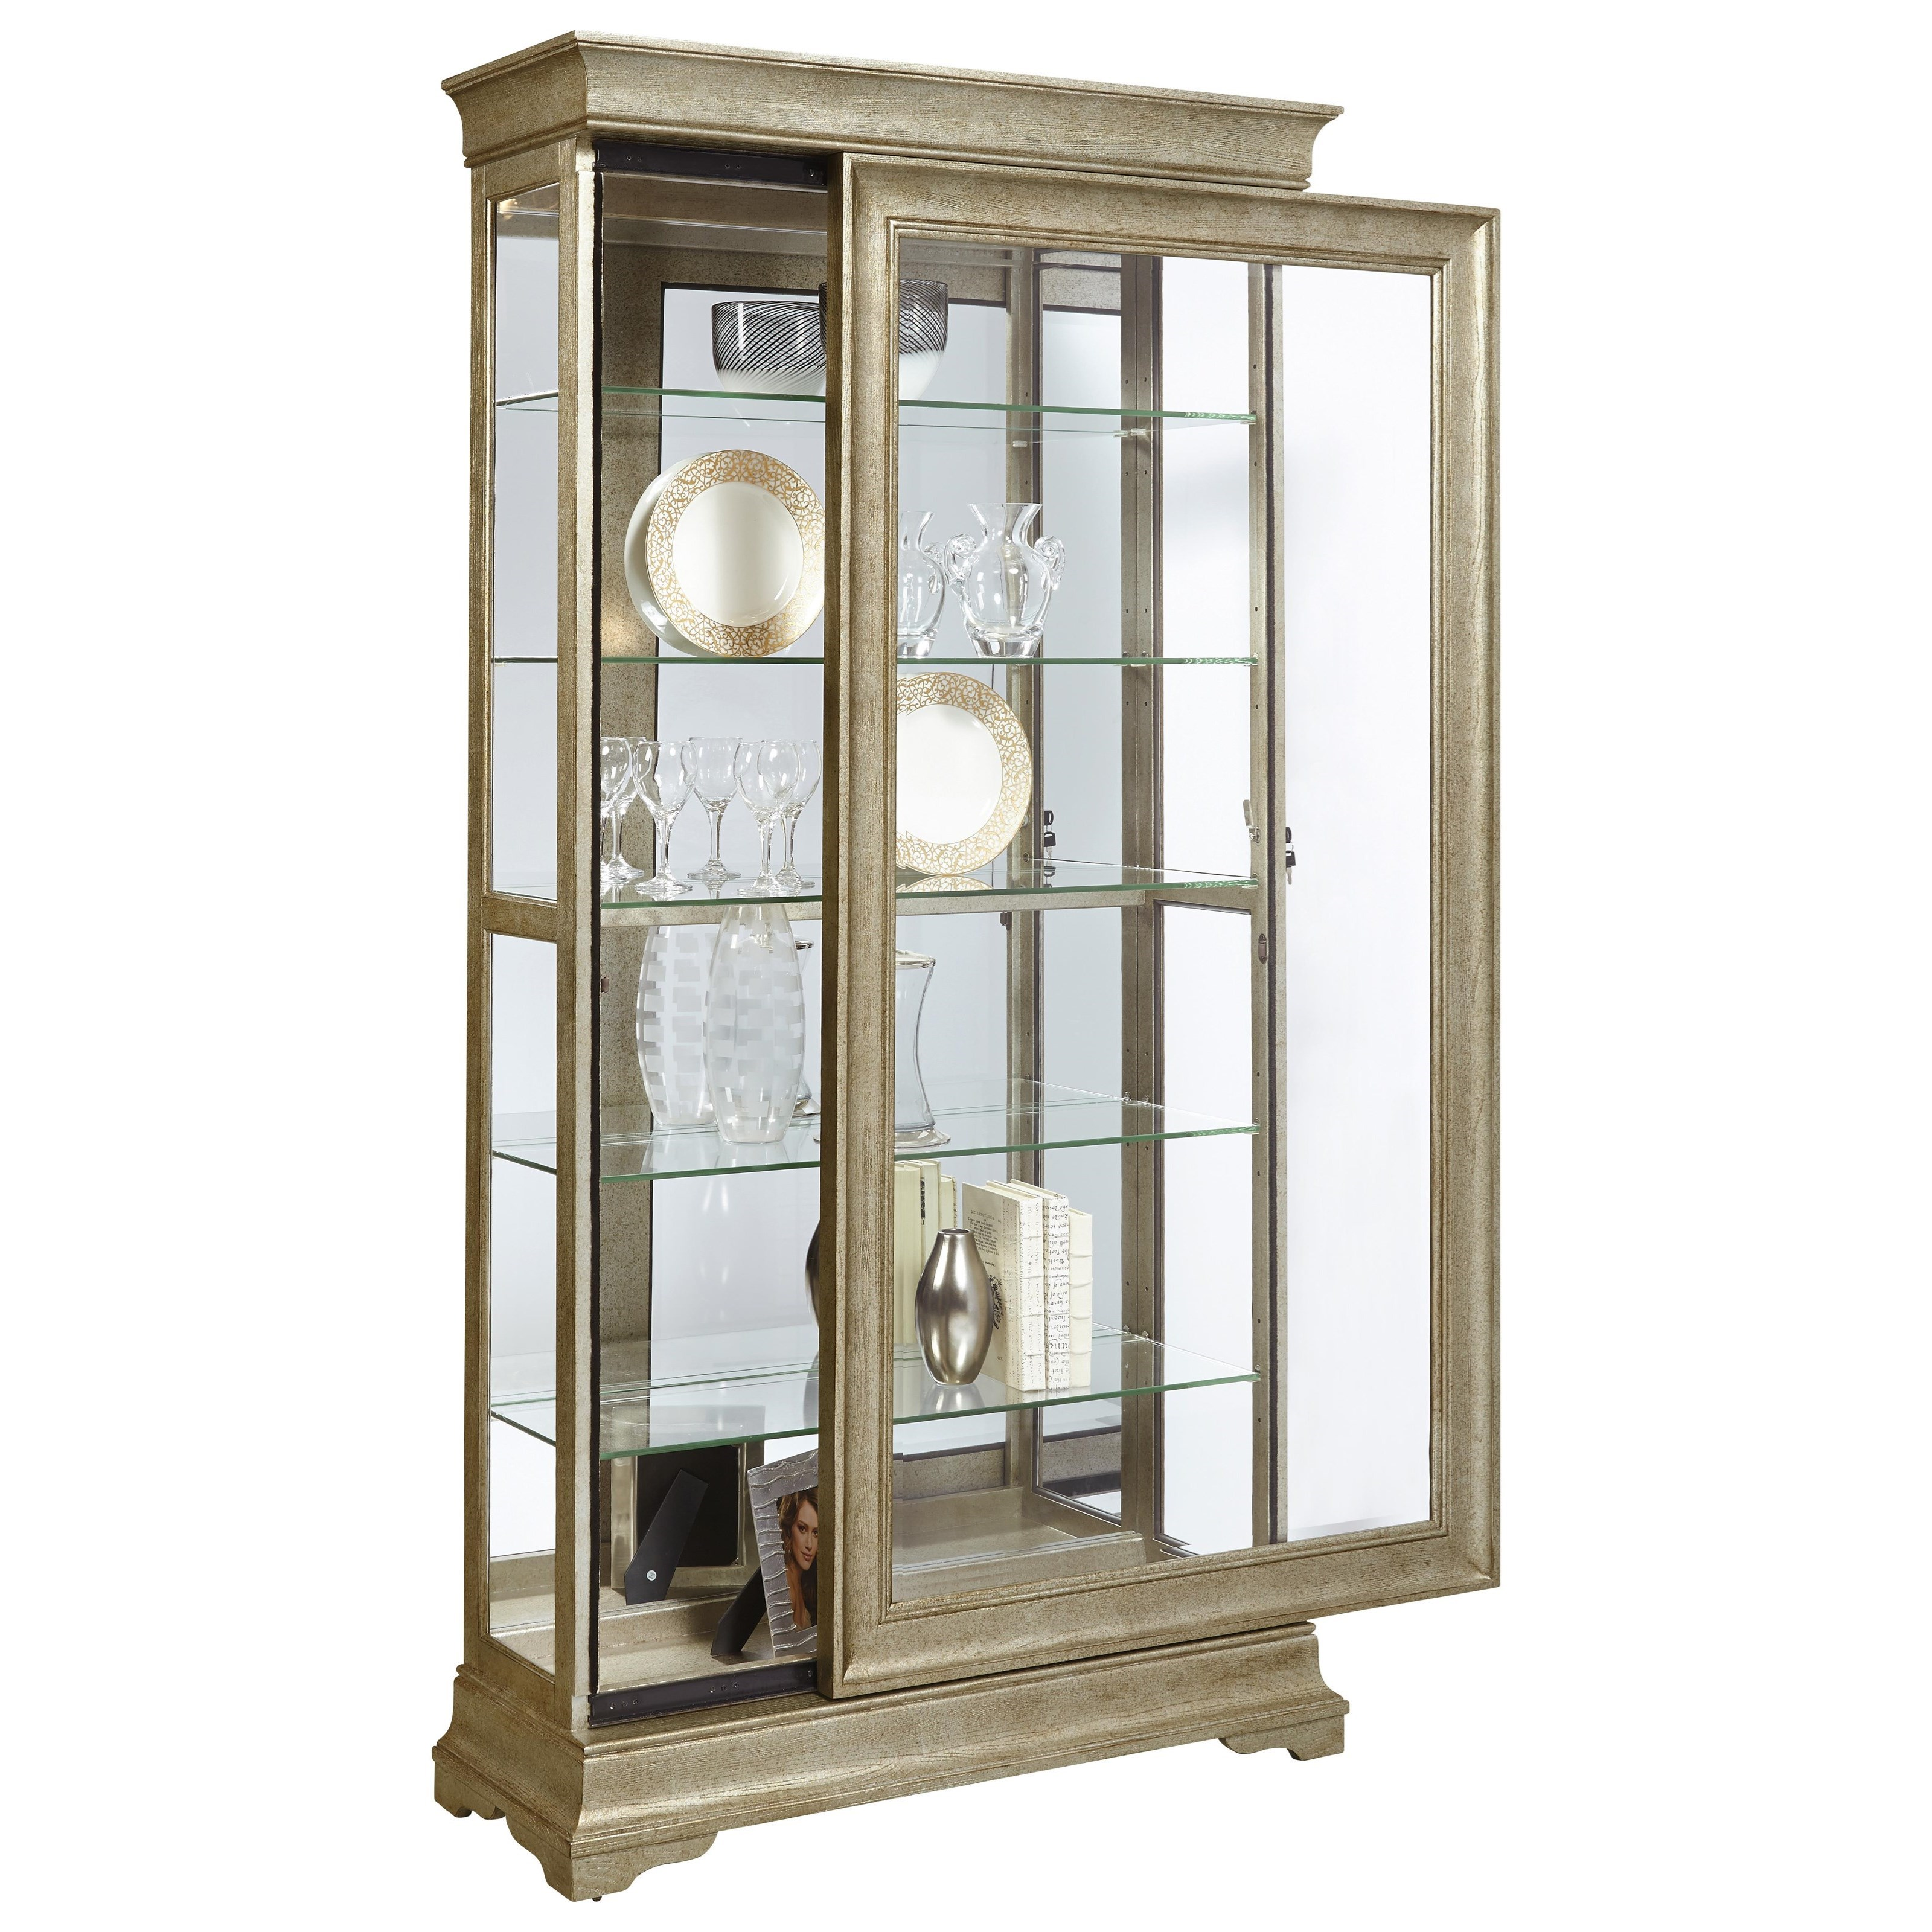 Pulaski Furniture Curios Lyon Curio With Louis Philippe Style Moldings Miskelly Furniture